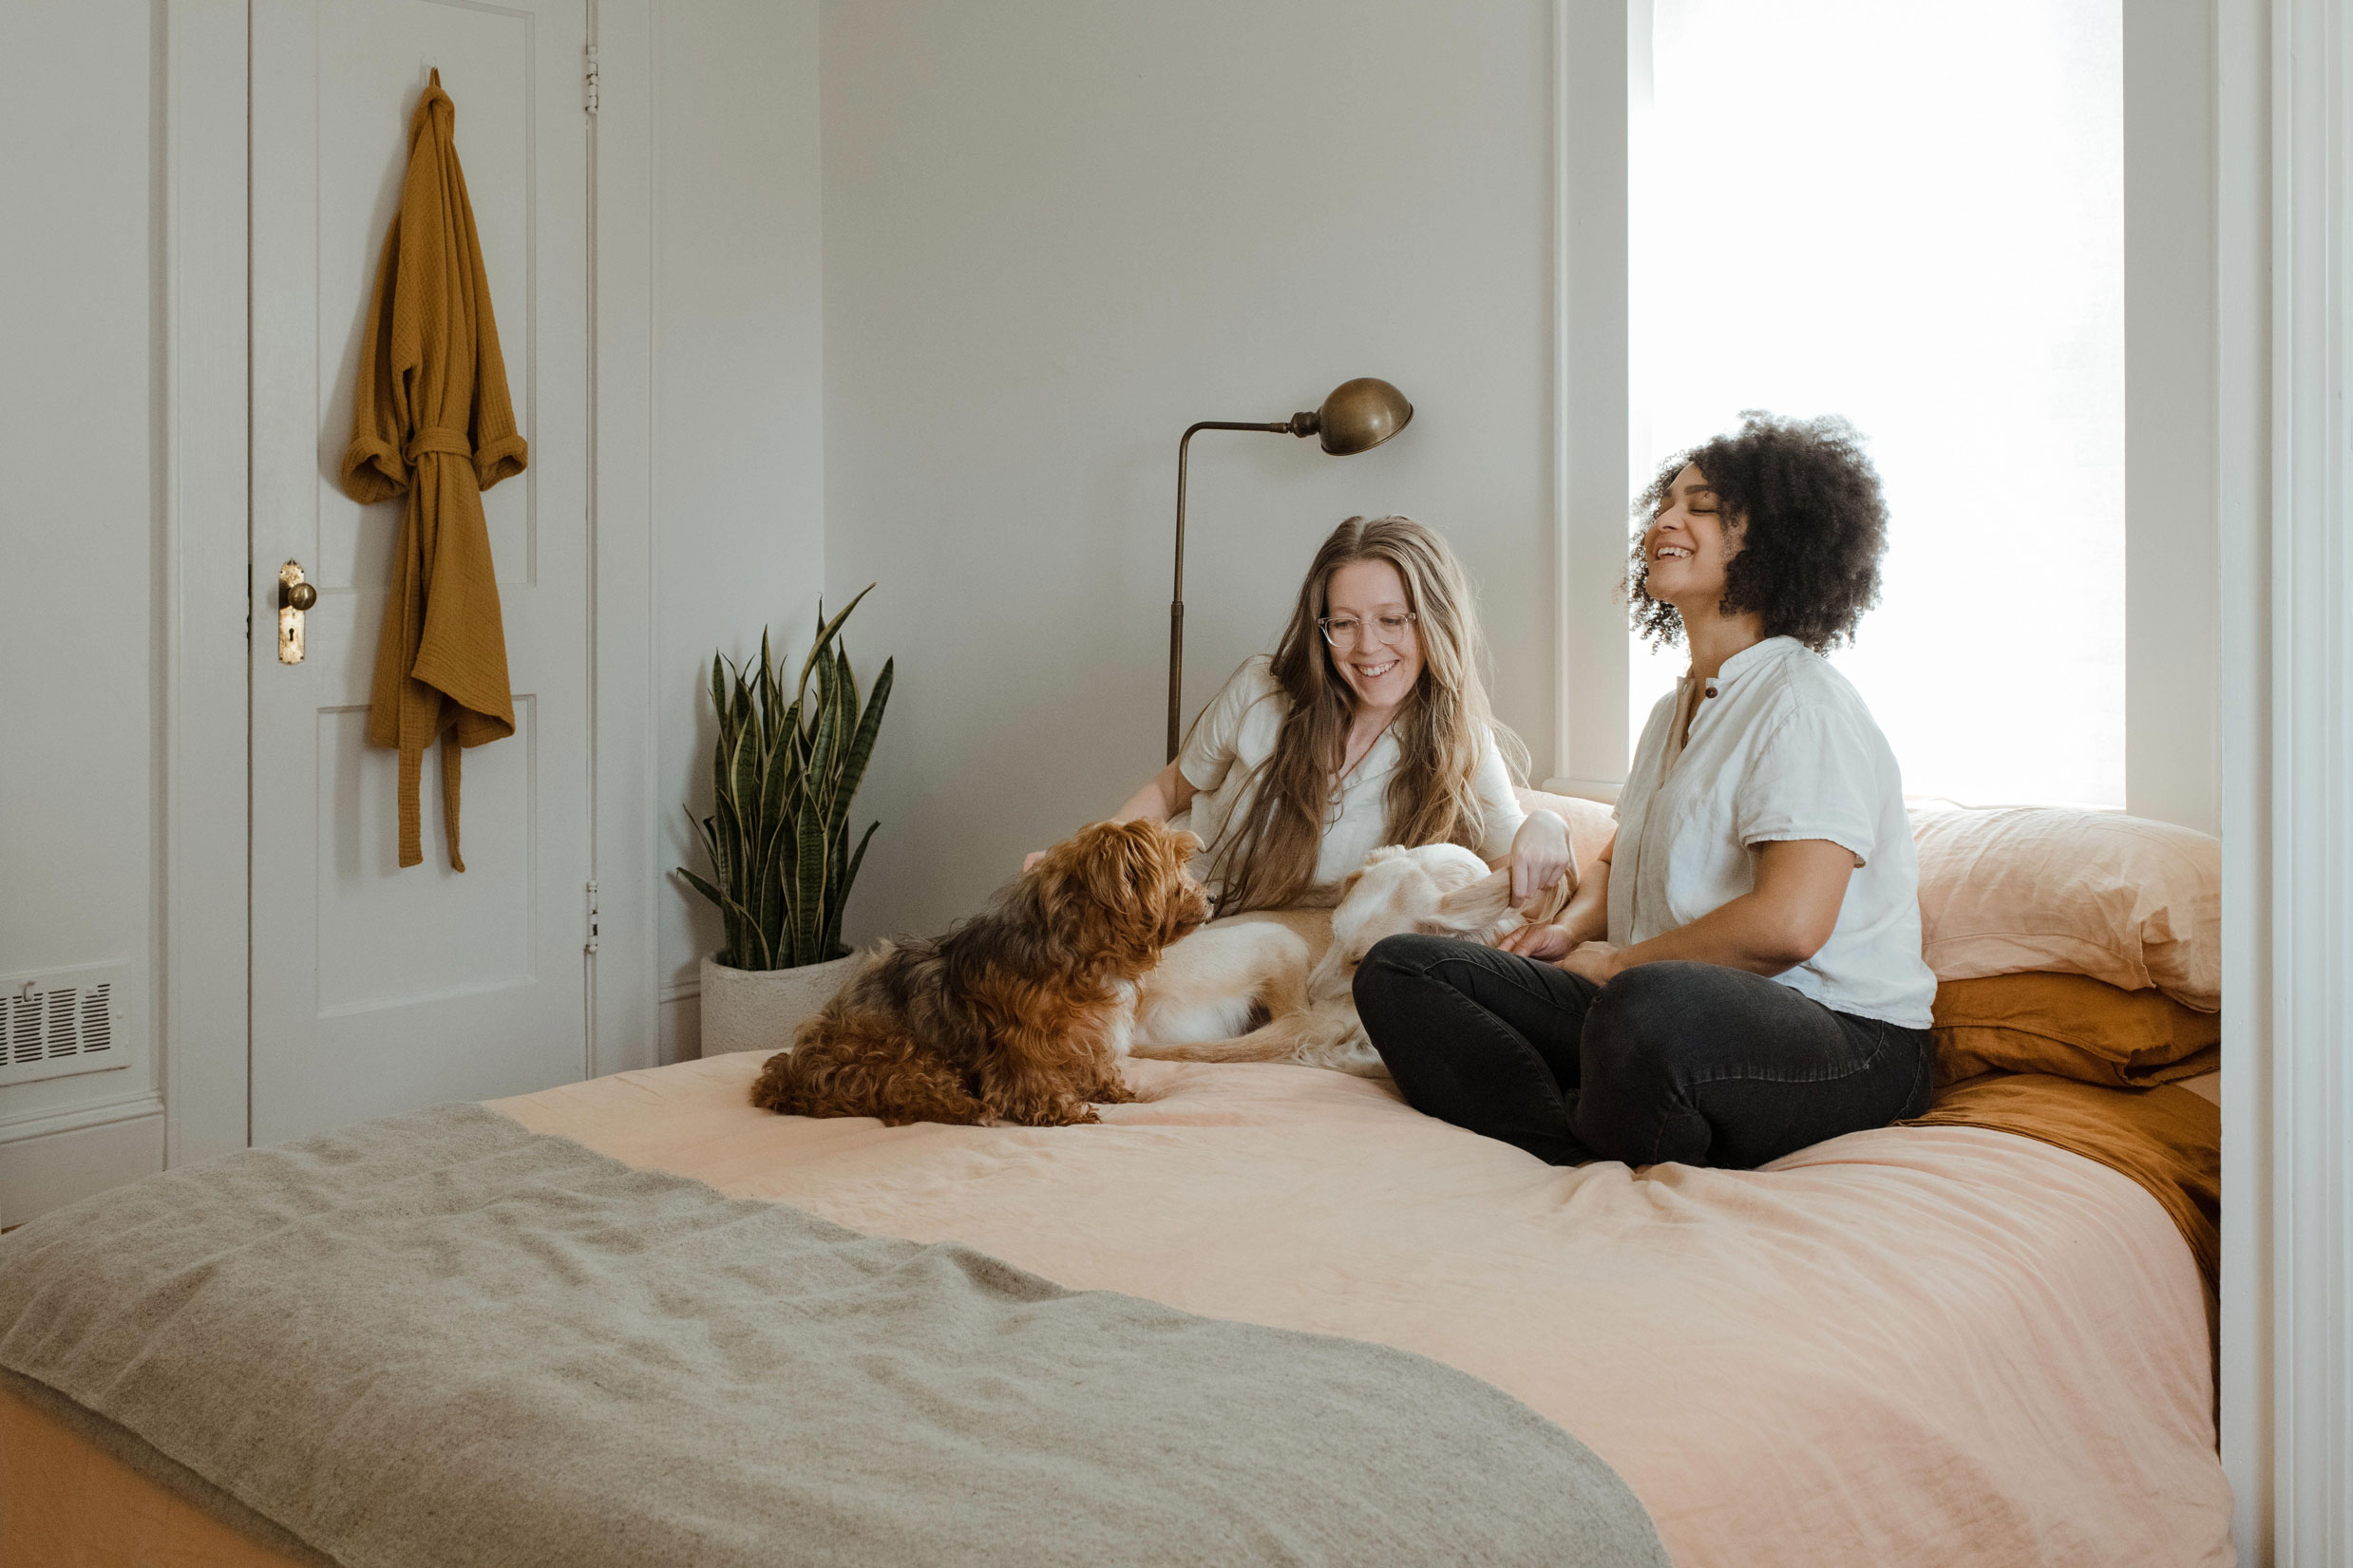 two women chatting with their dog laughing